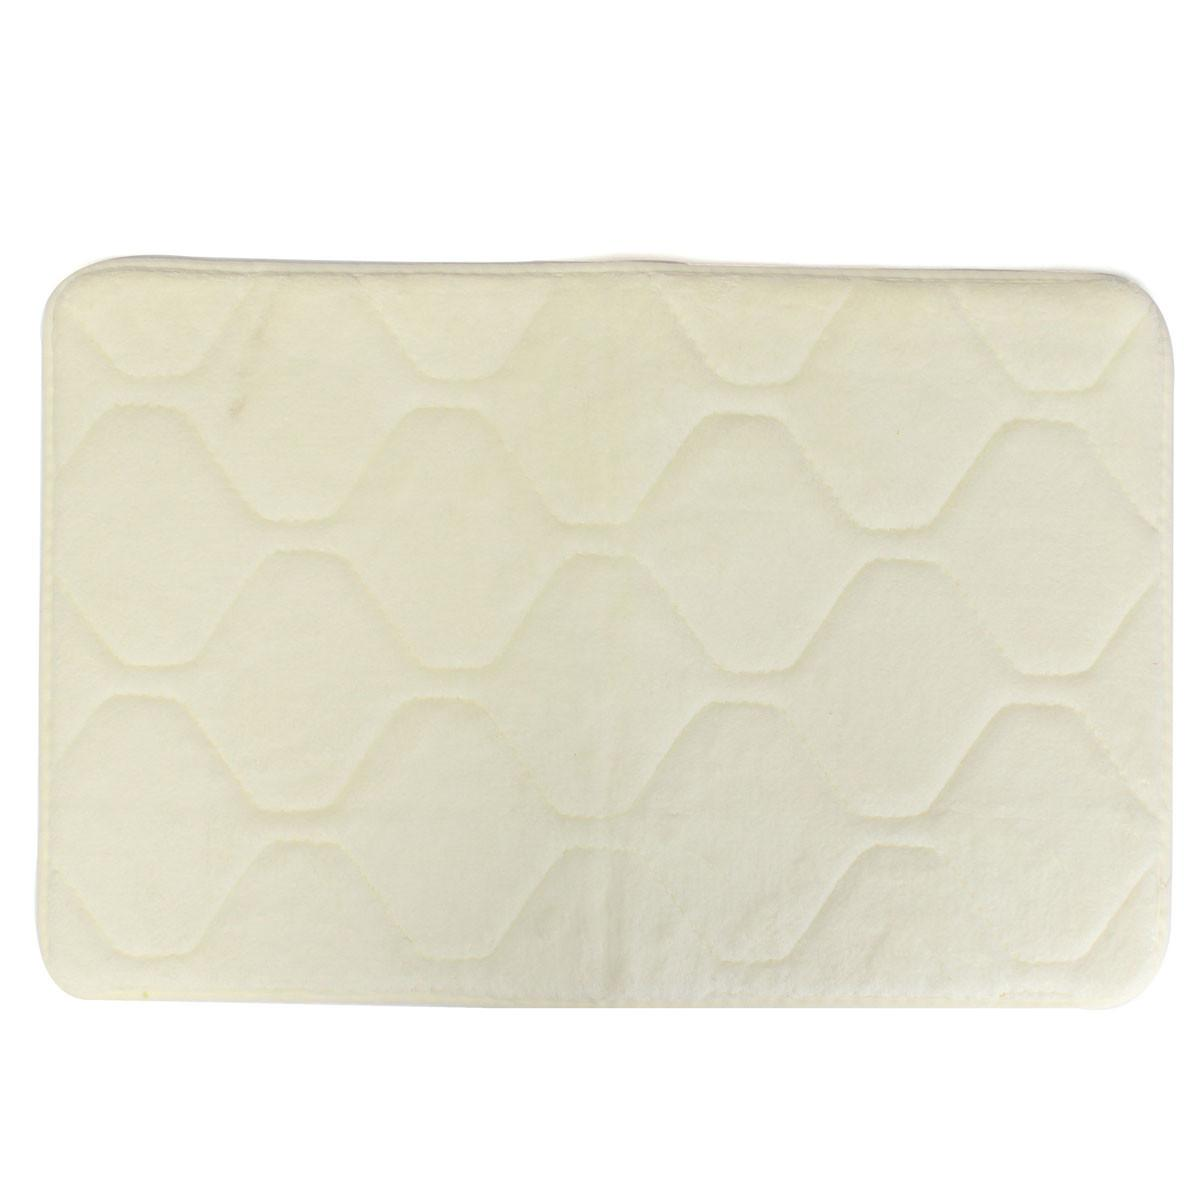 Non Slip Absorbent Easy Cleaning Soft Memory Foam Mat